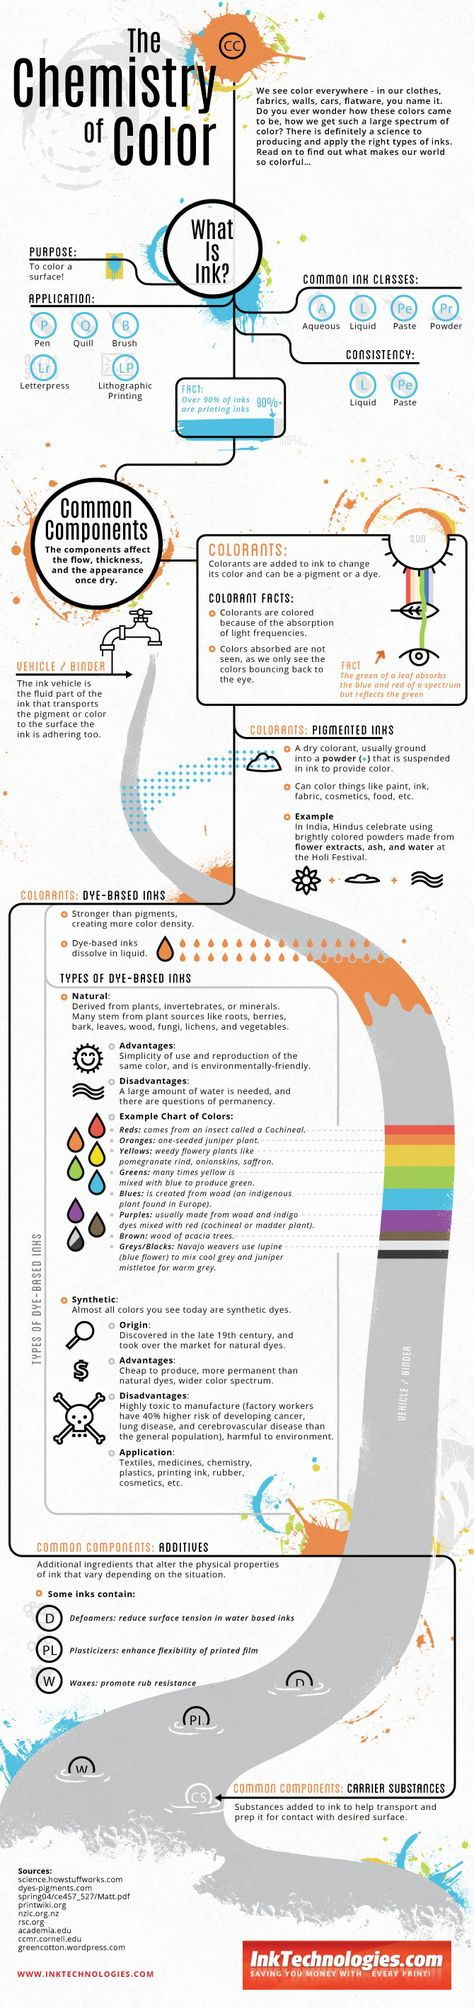 The Chemistry of Color #Infographic #Colors